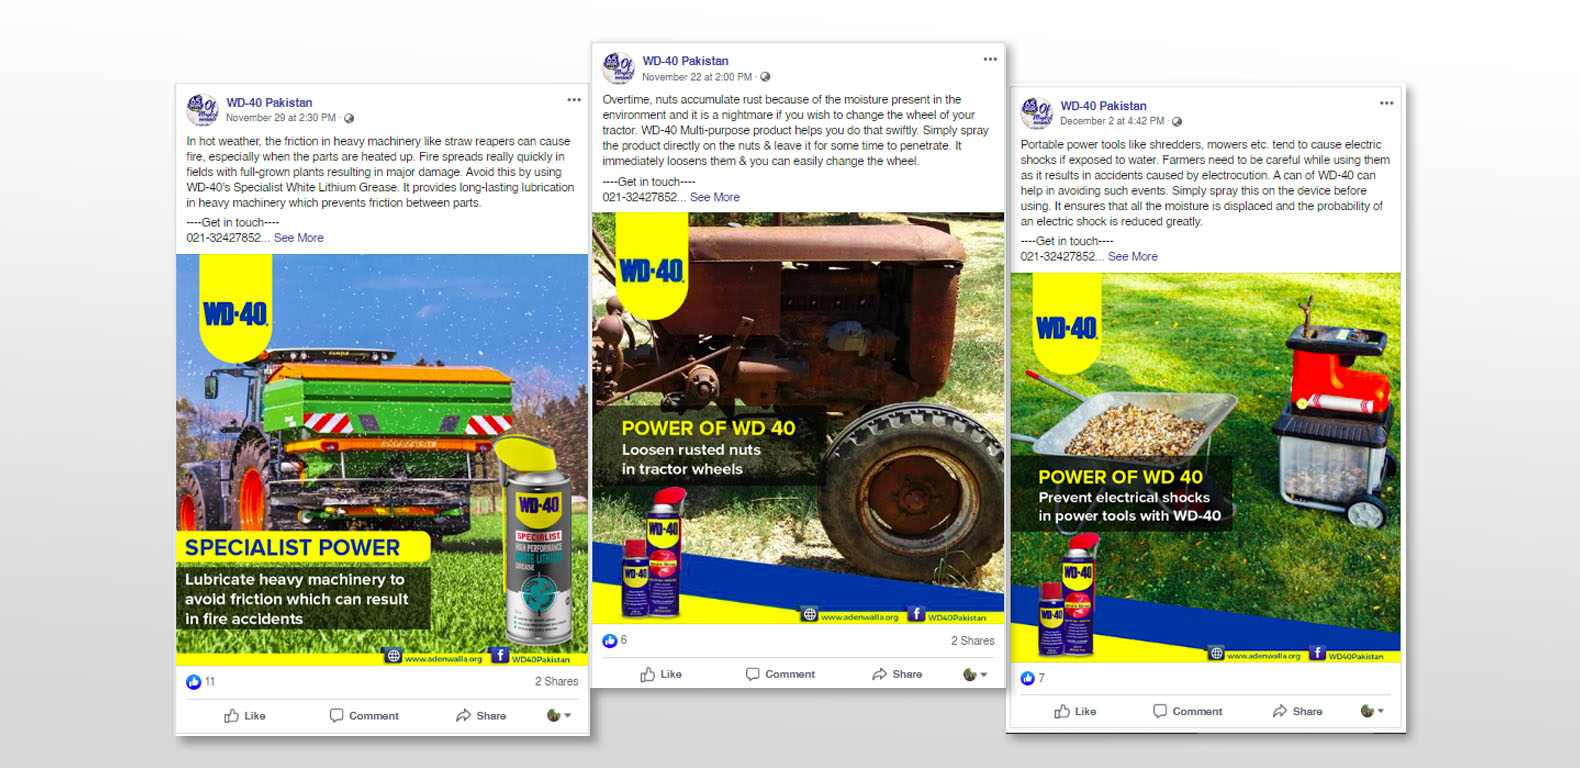 WD40-Pakistan-Social-media-marketing-agricultural-posts-